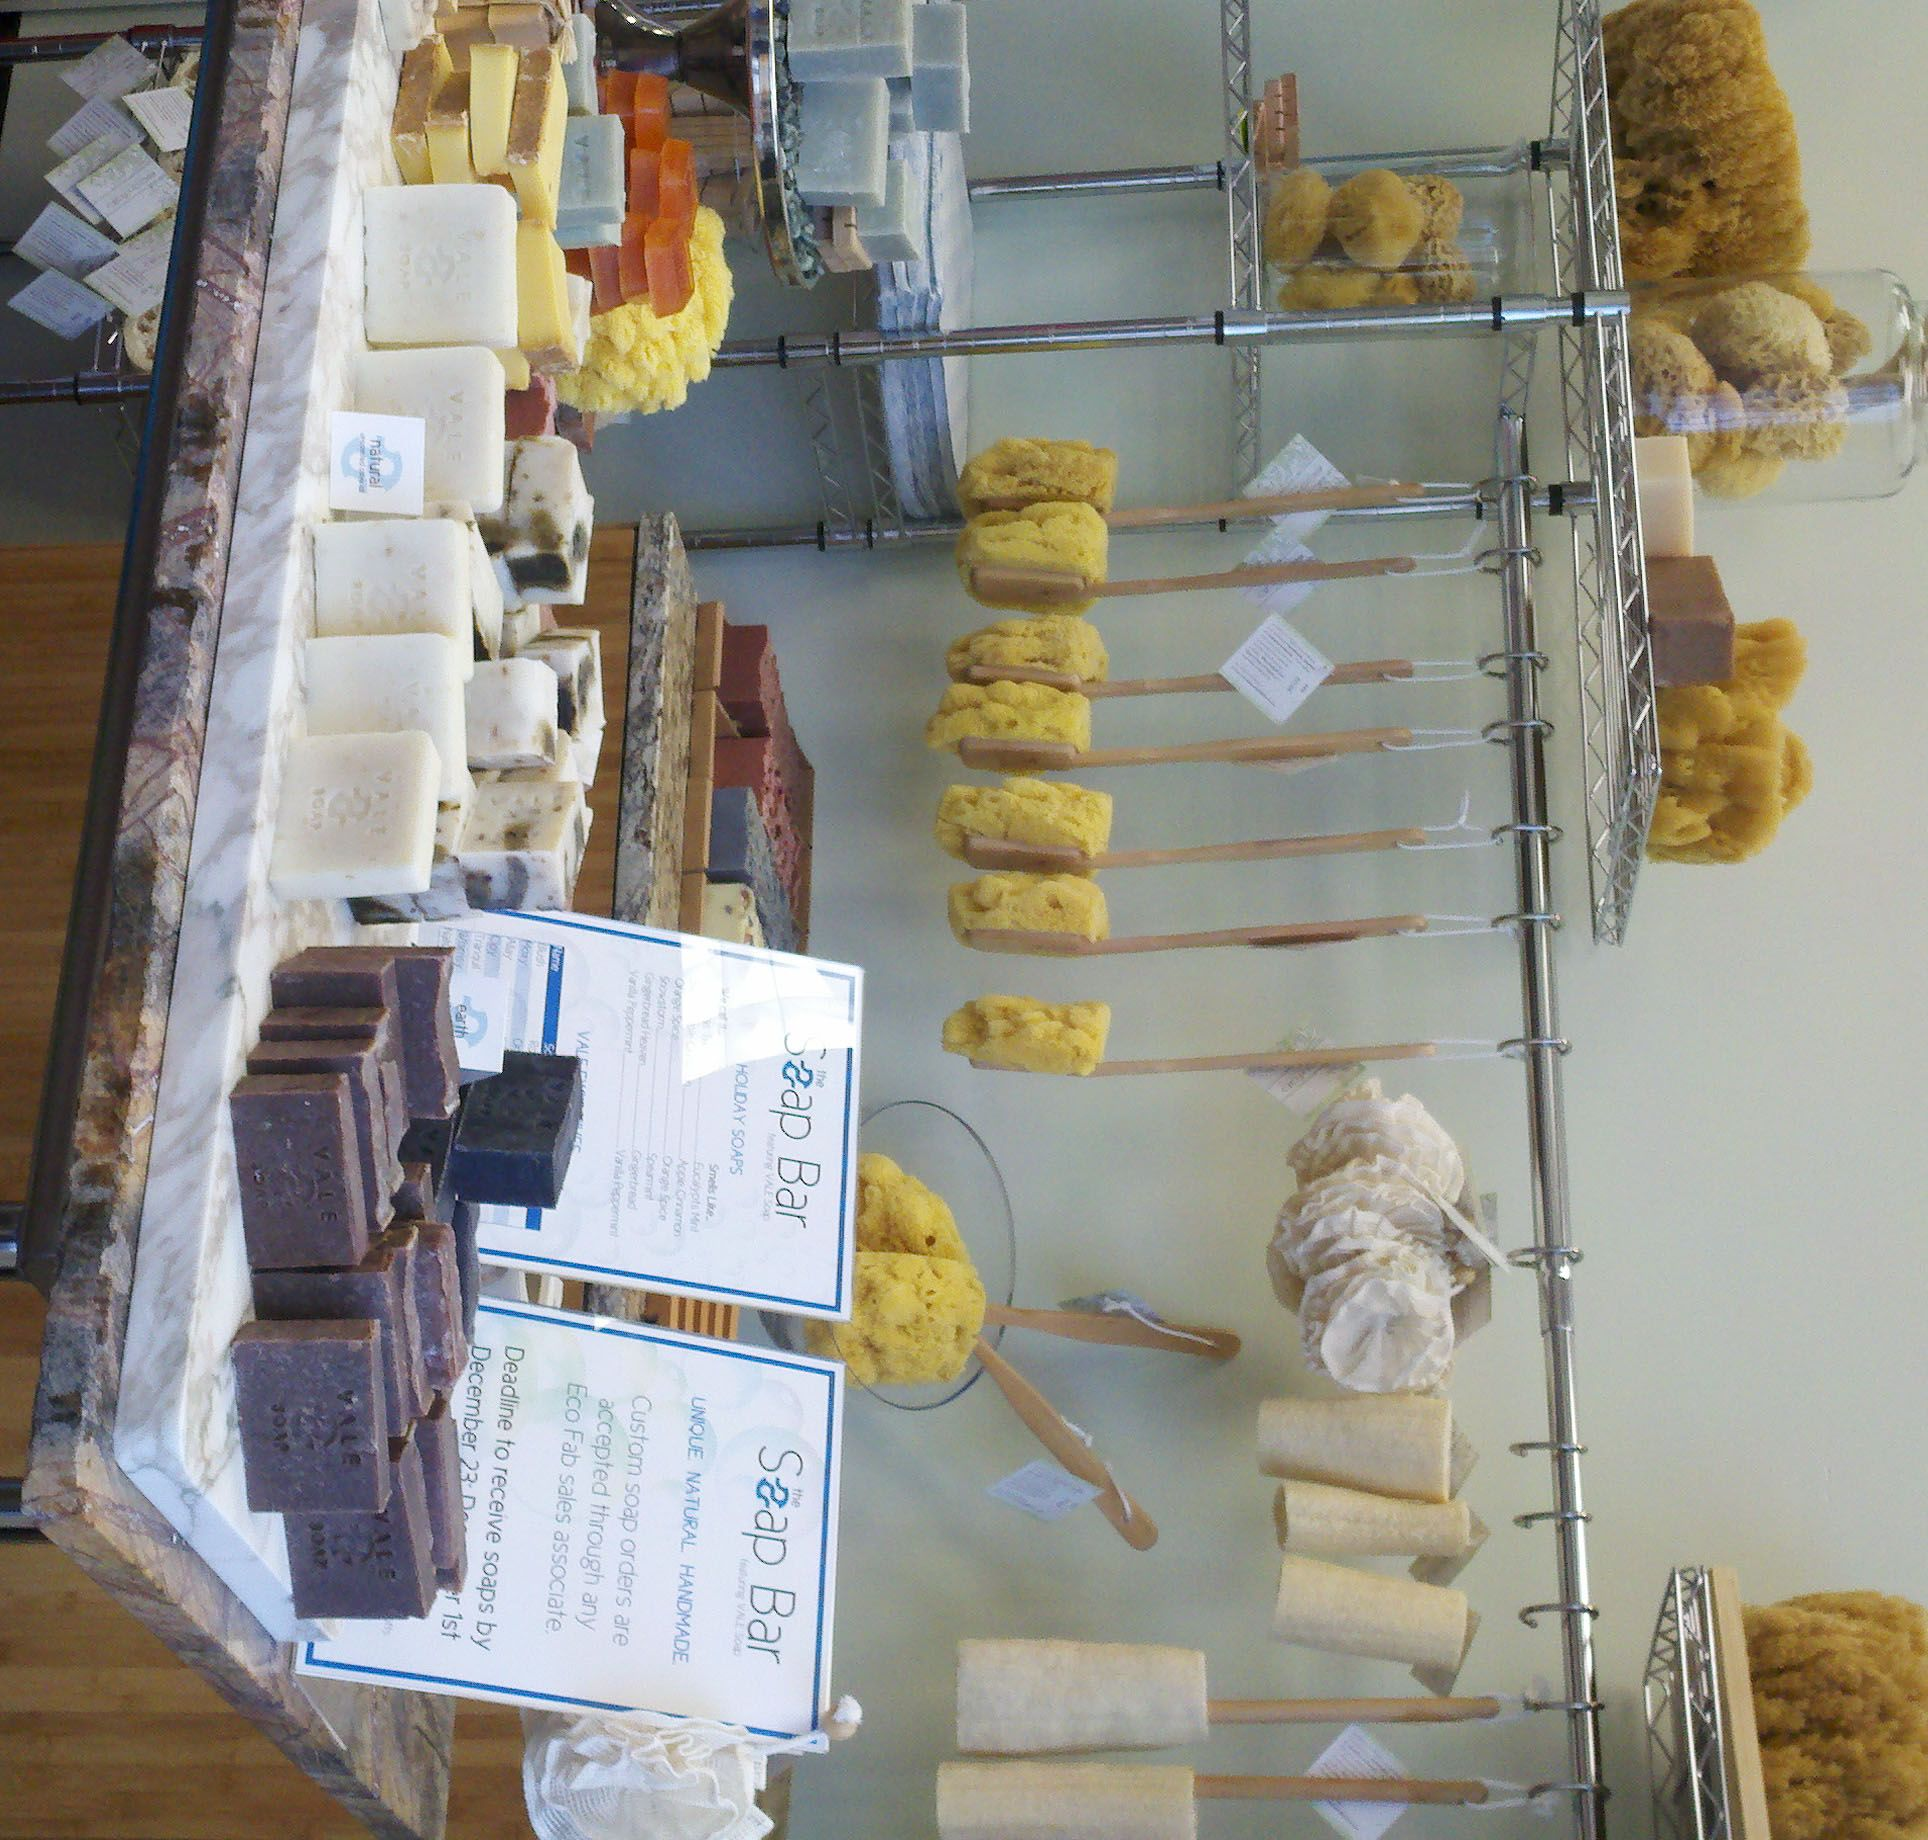 images of farmers market soap display - Google Search